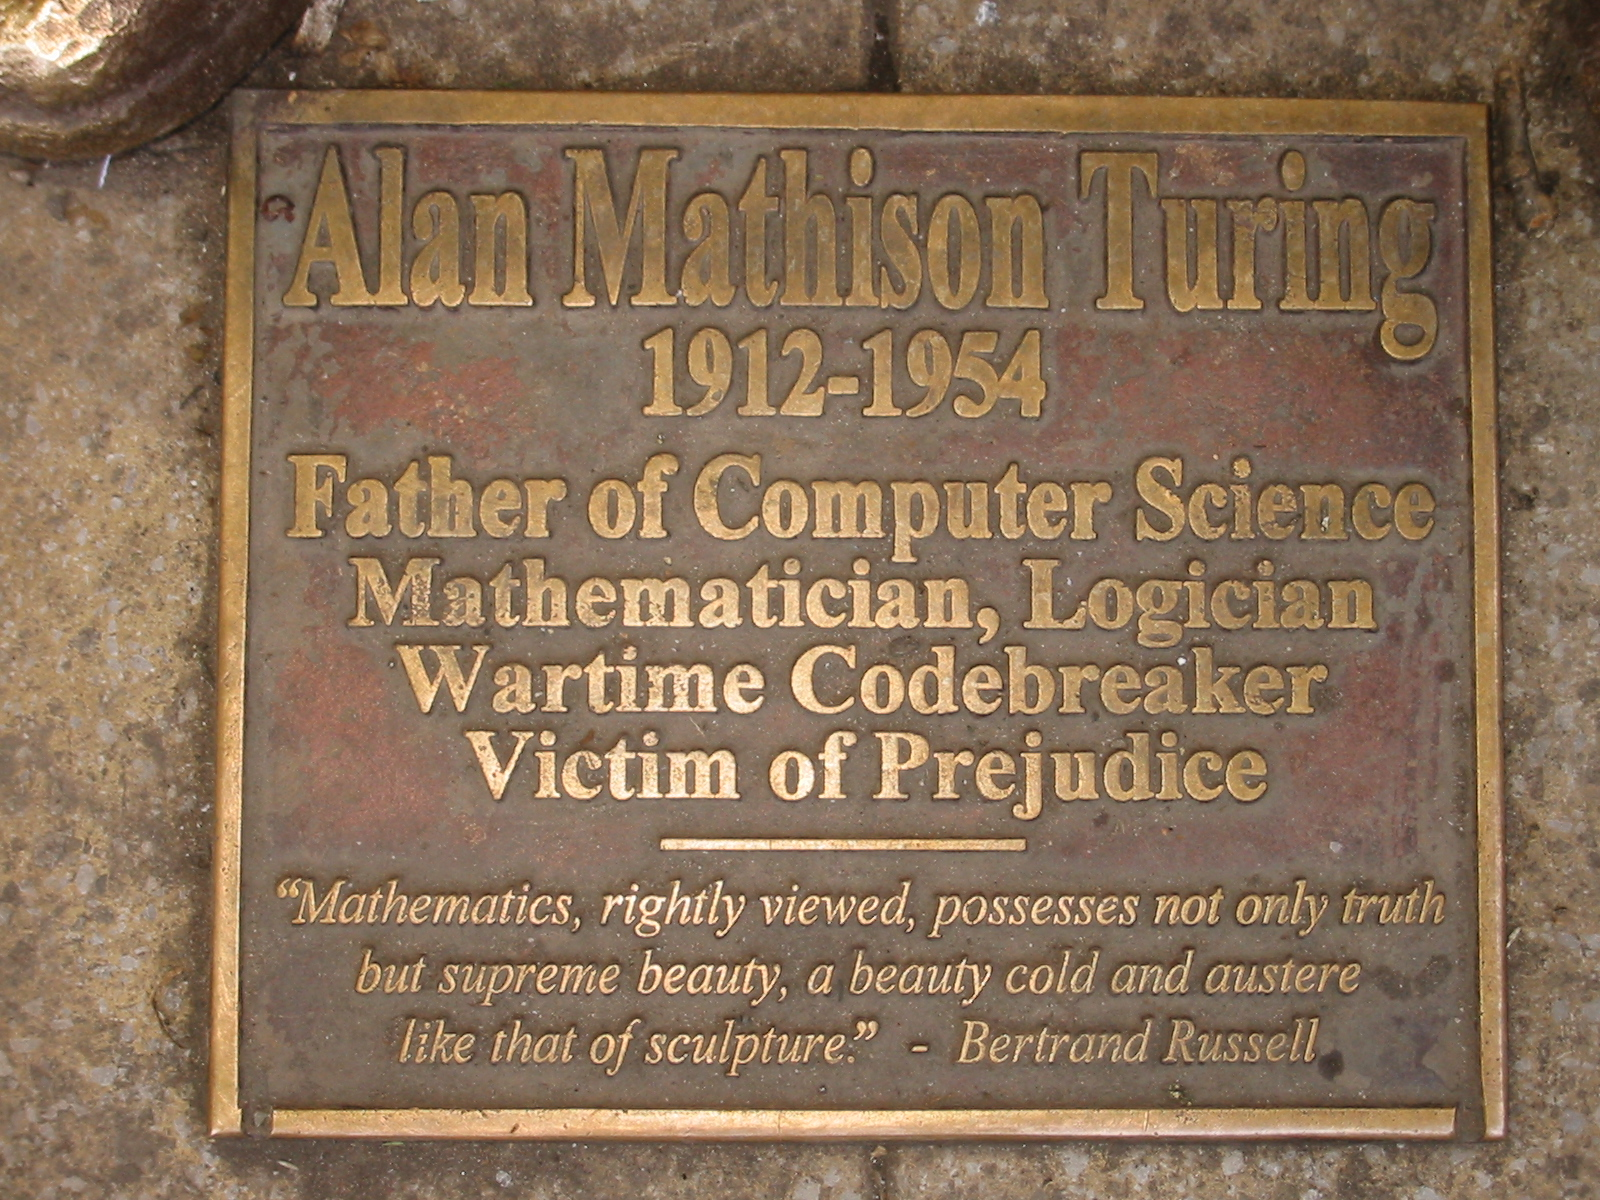 Alan Turing plaque